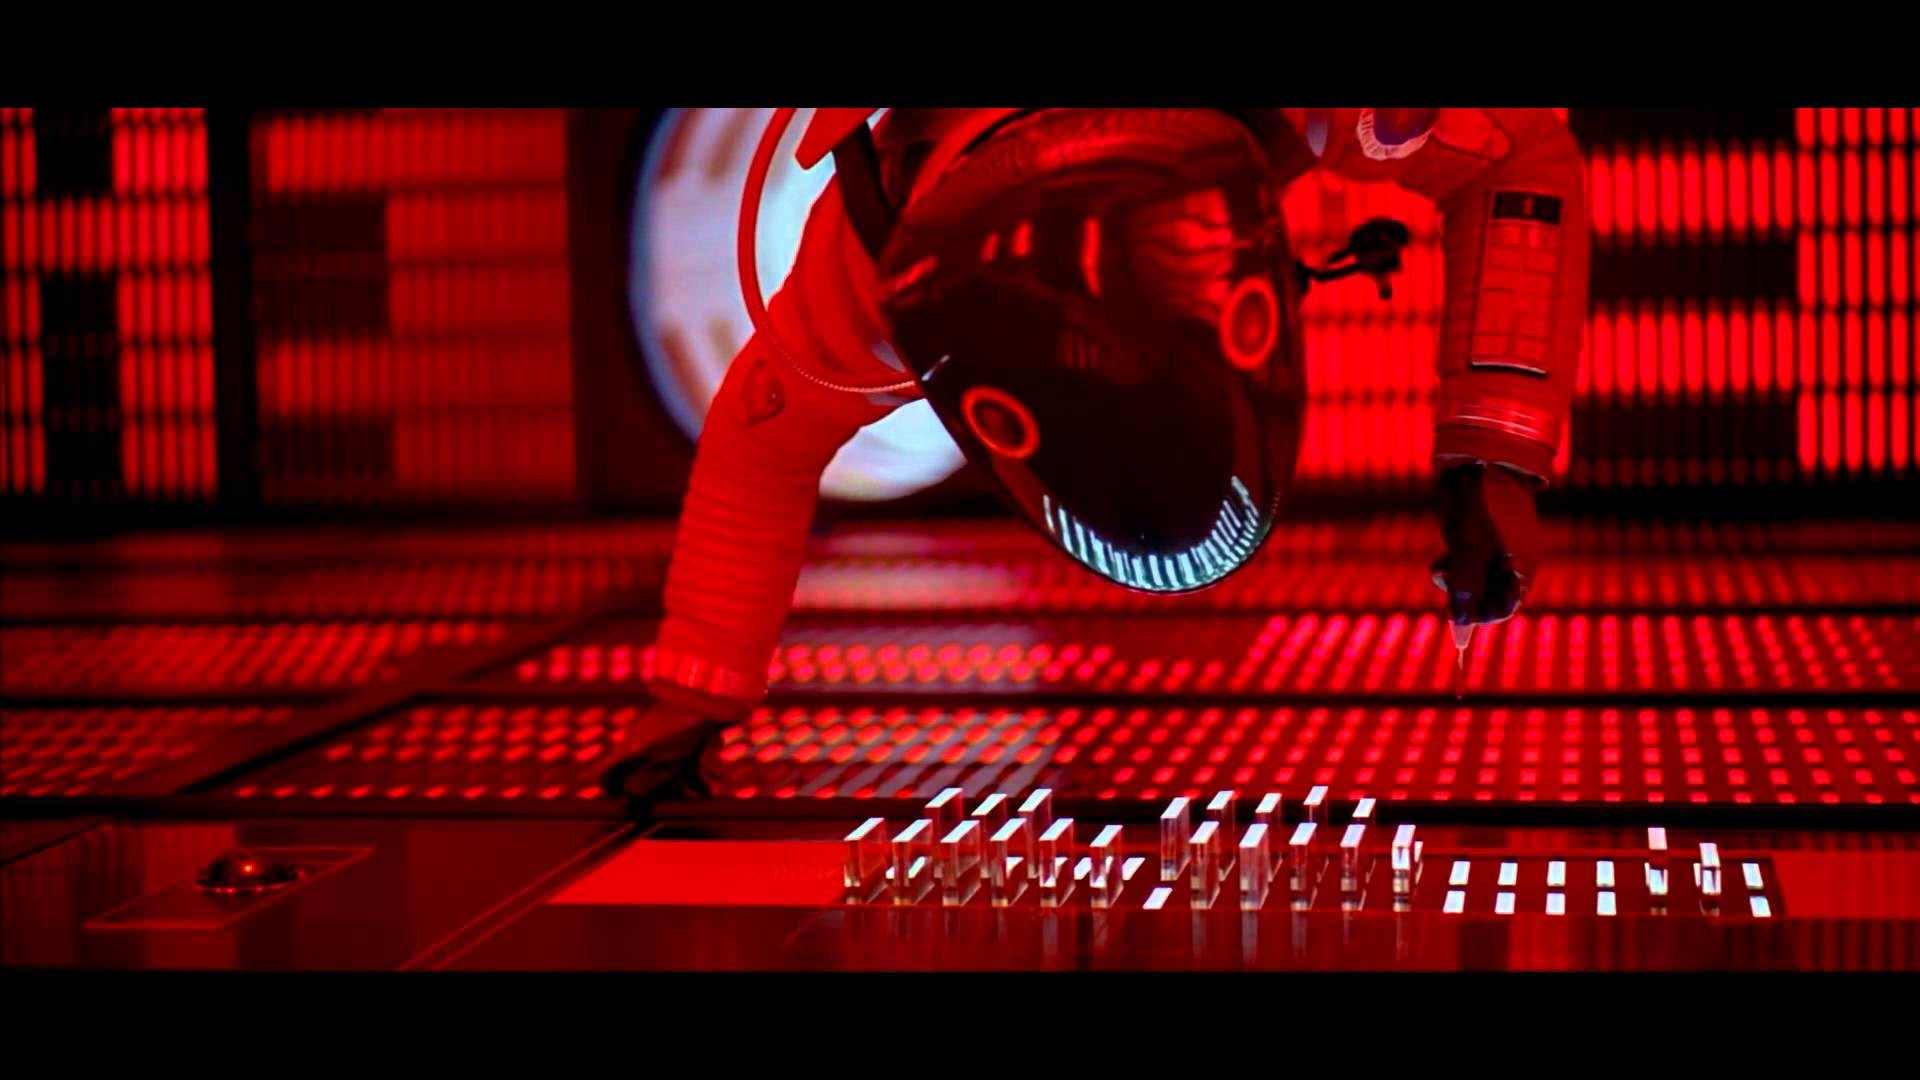 2001 A Space Odyssey Wallpaper 1920x1080 Posted By Samantha Mercado